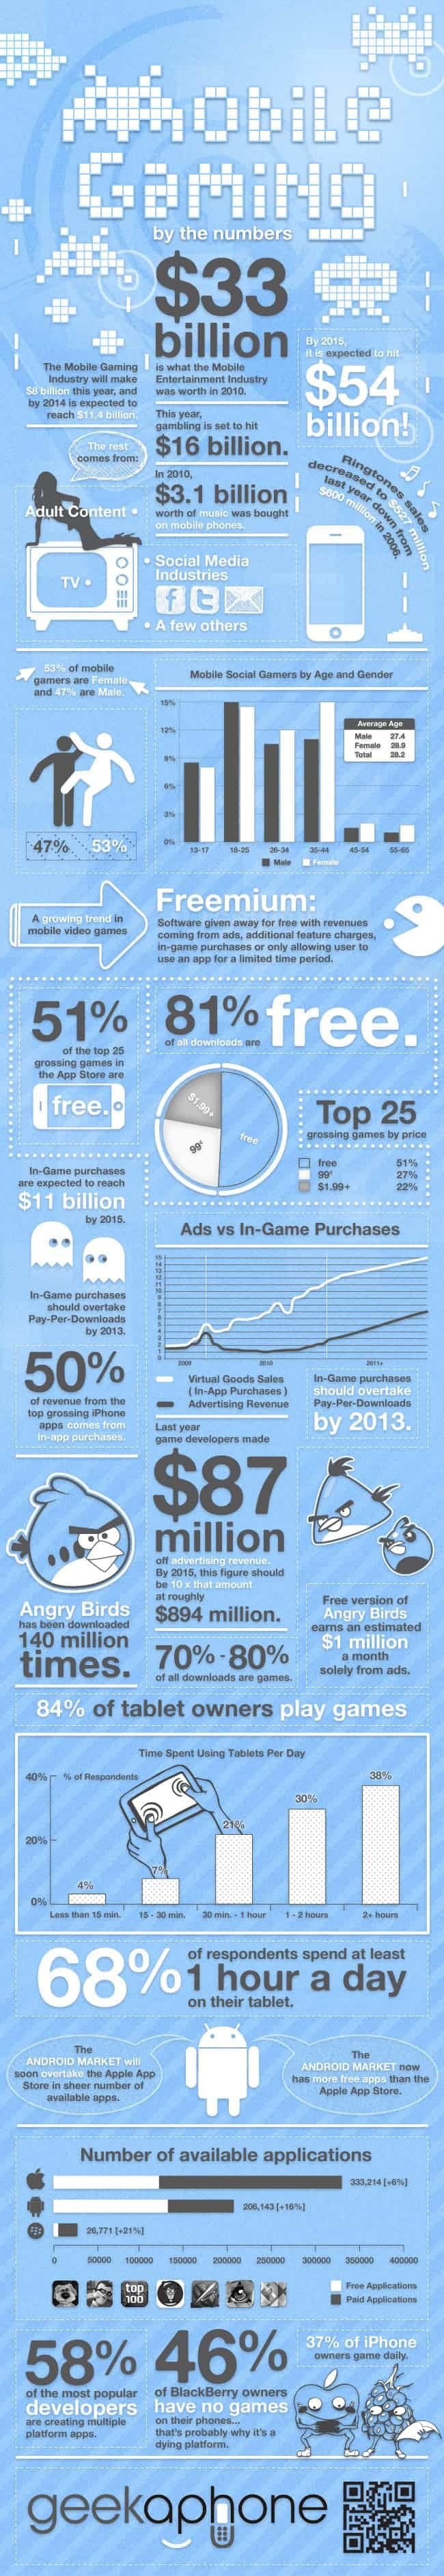 Mobile Gaming by the Numbers